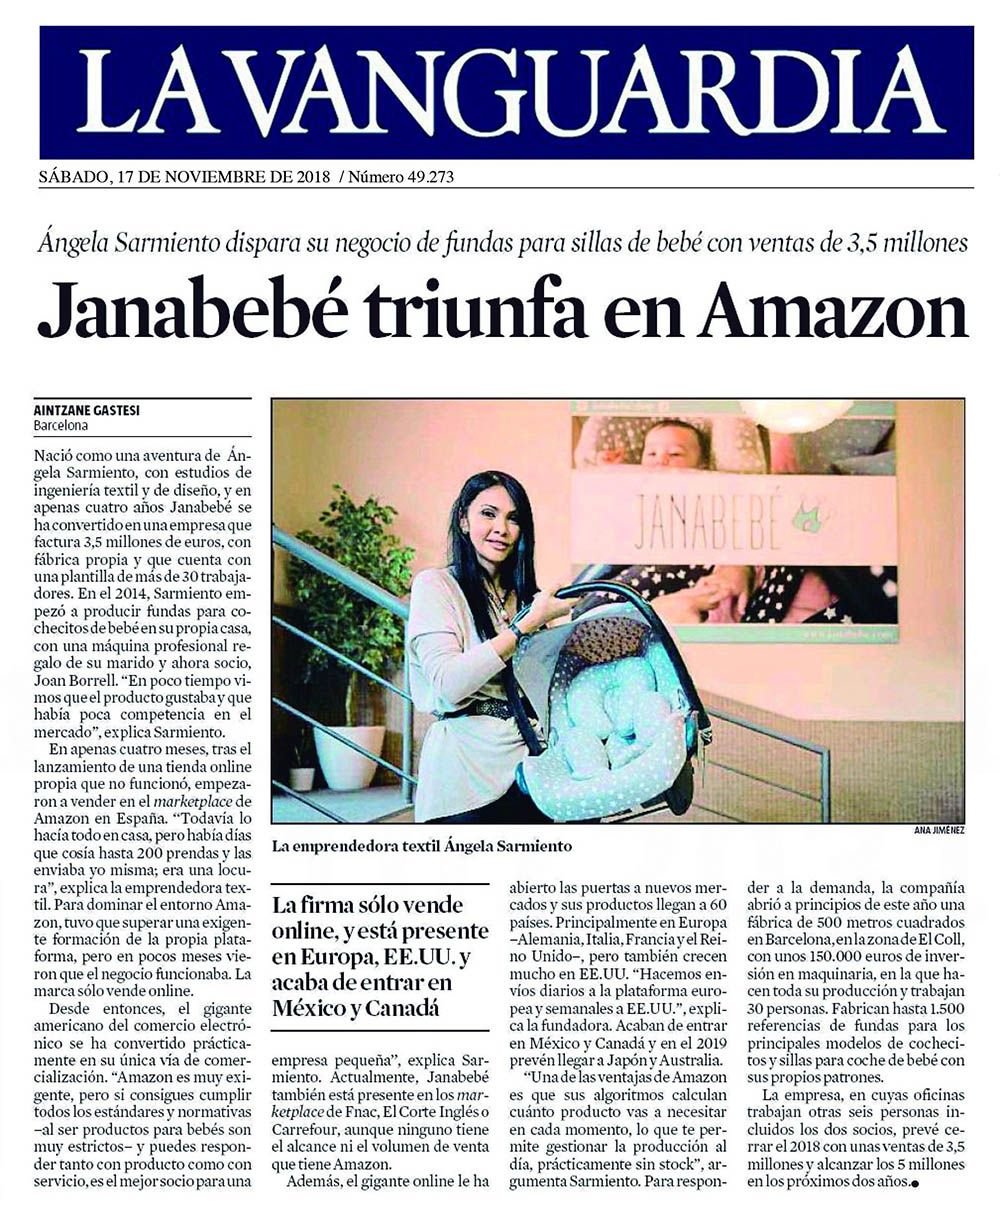 JANABEBÉ TRIUMPH IN AMAZON